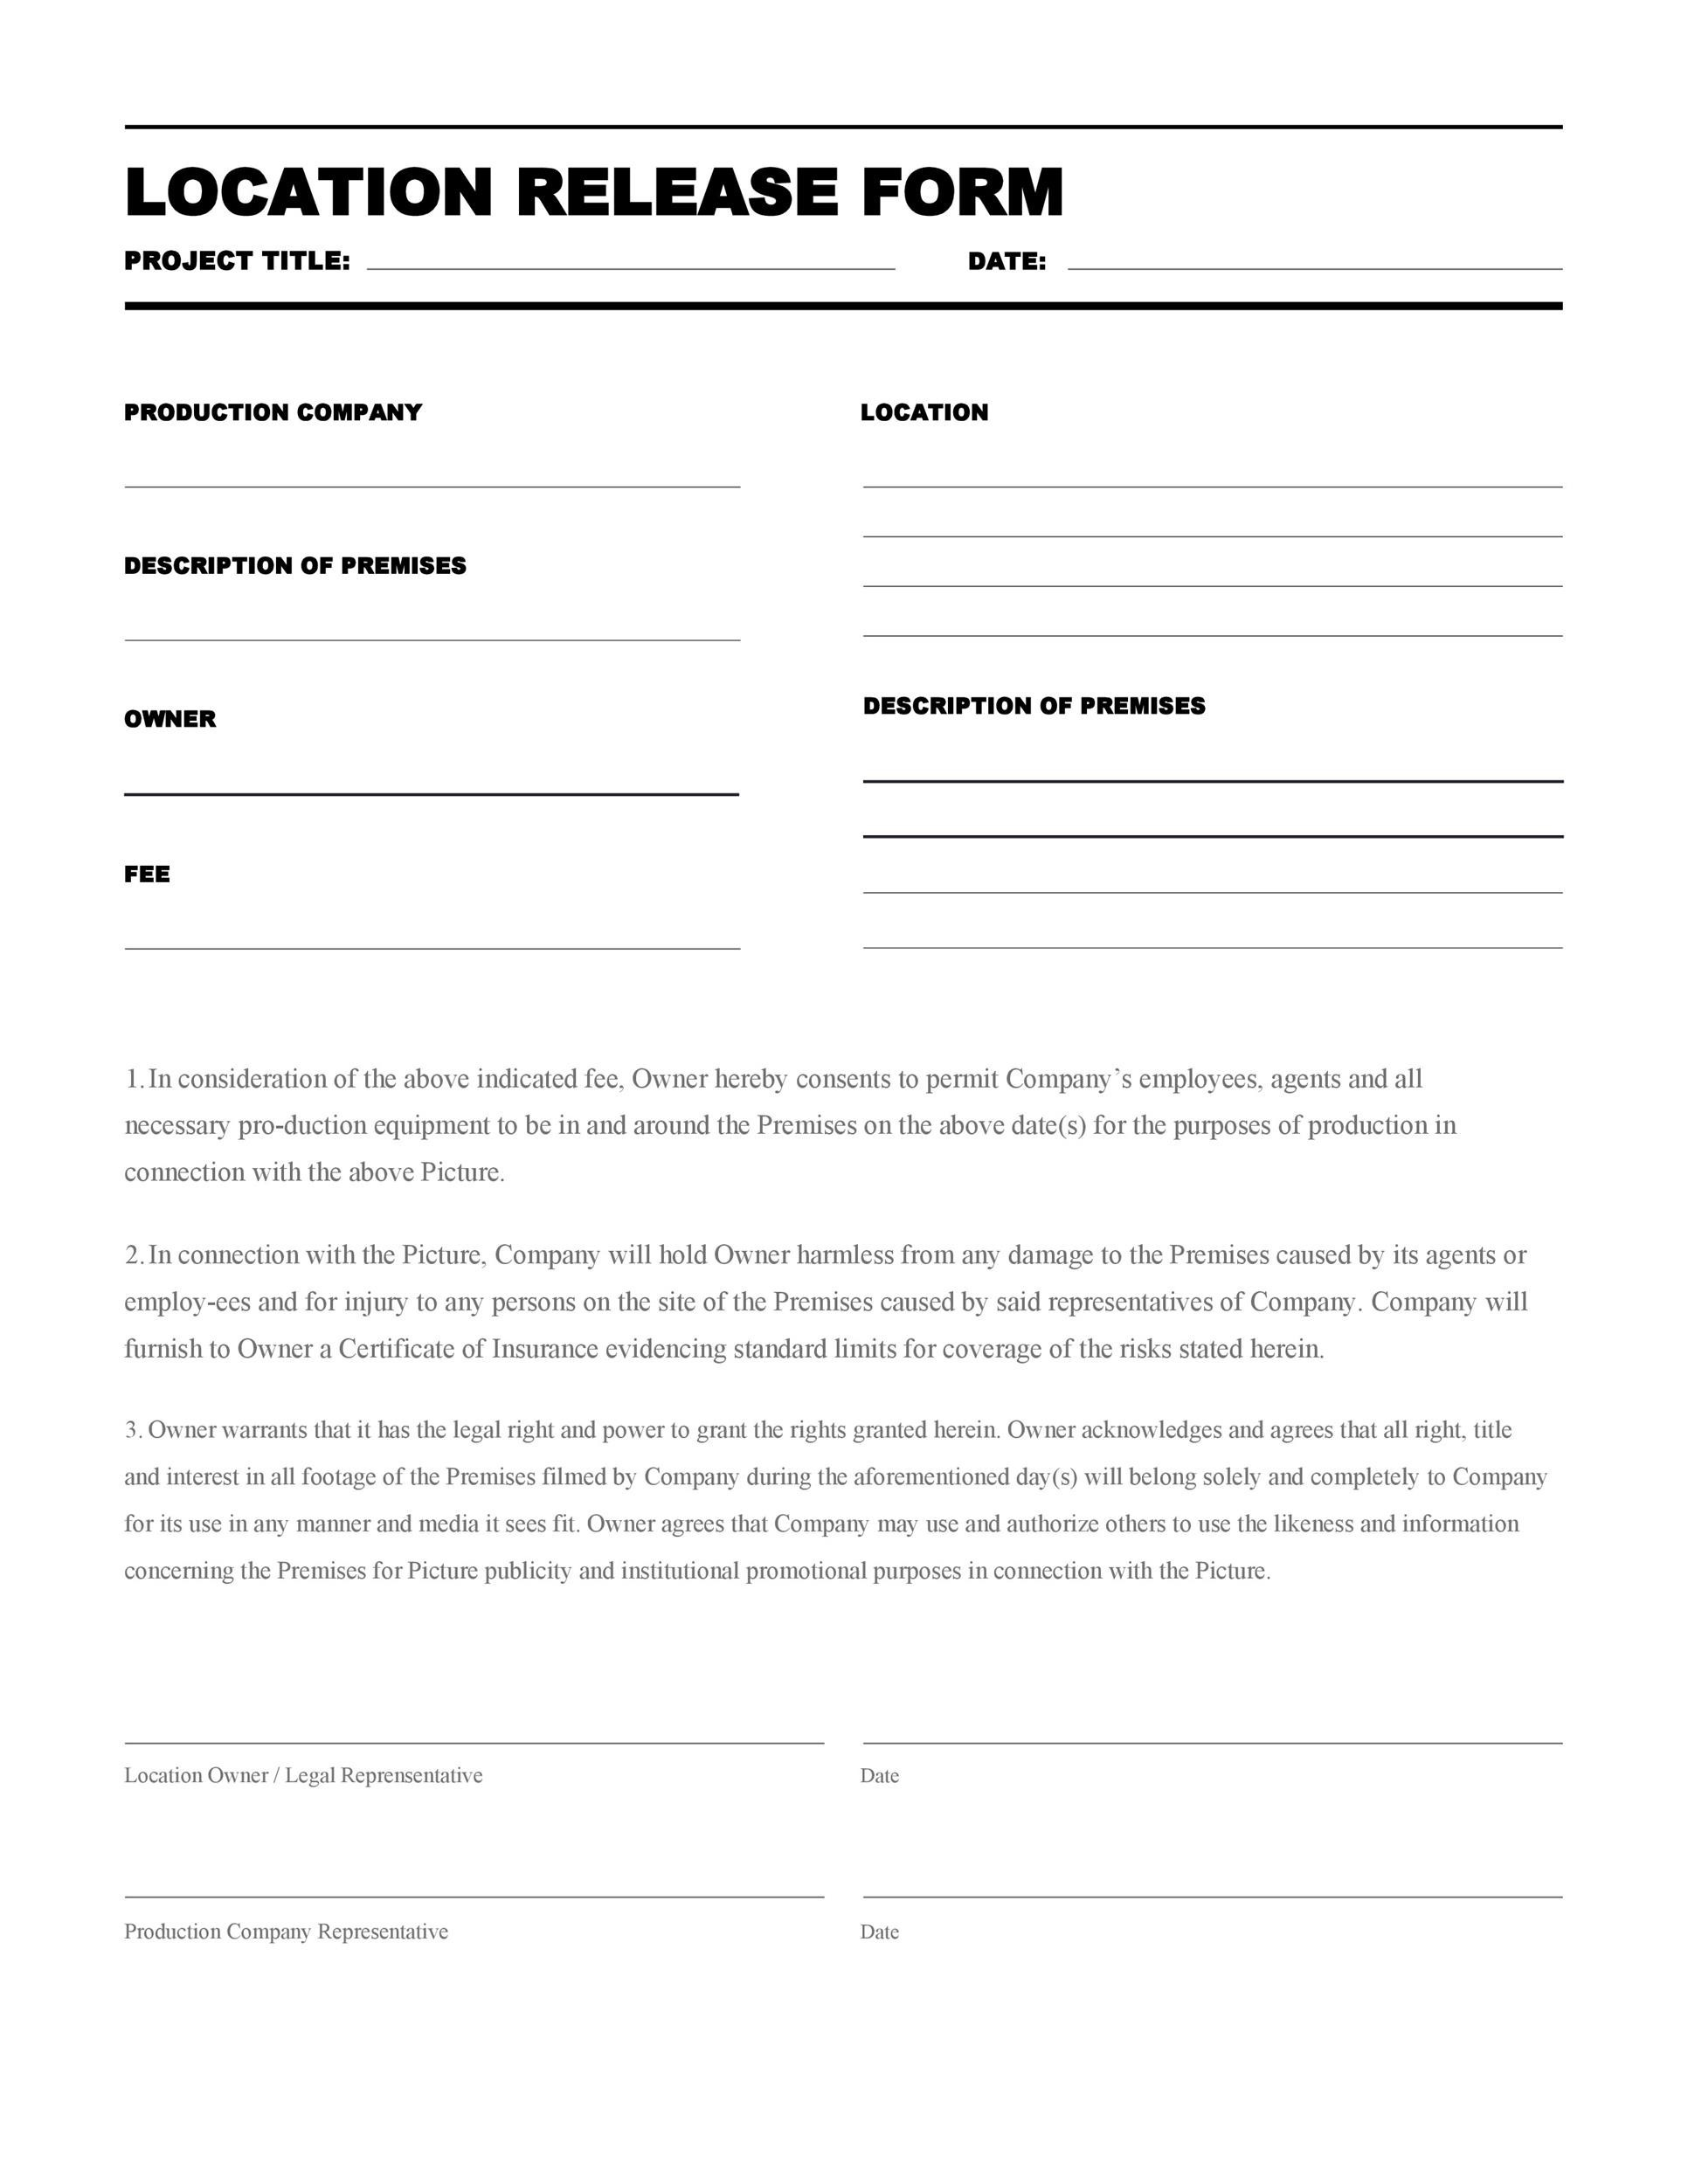 Free location release form 08